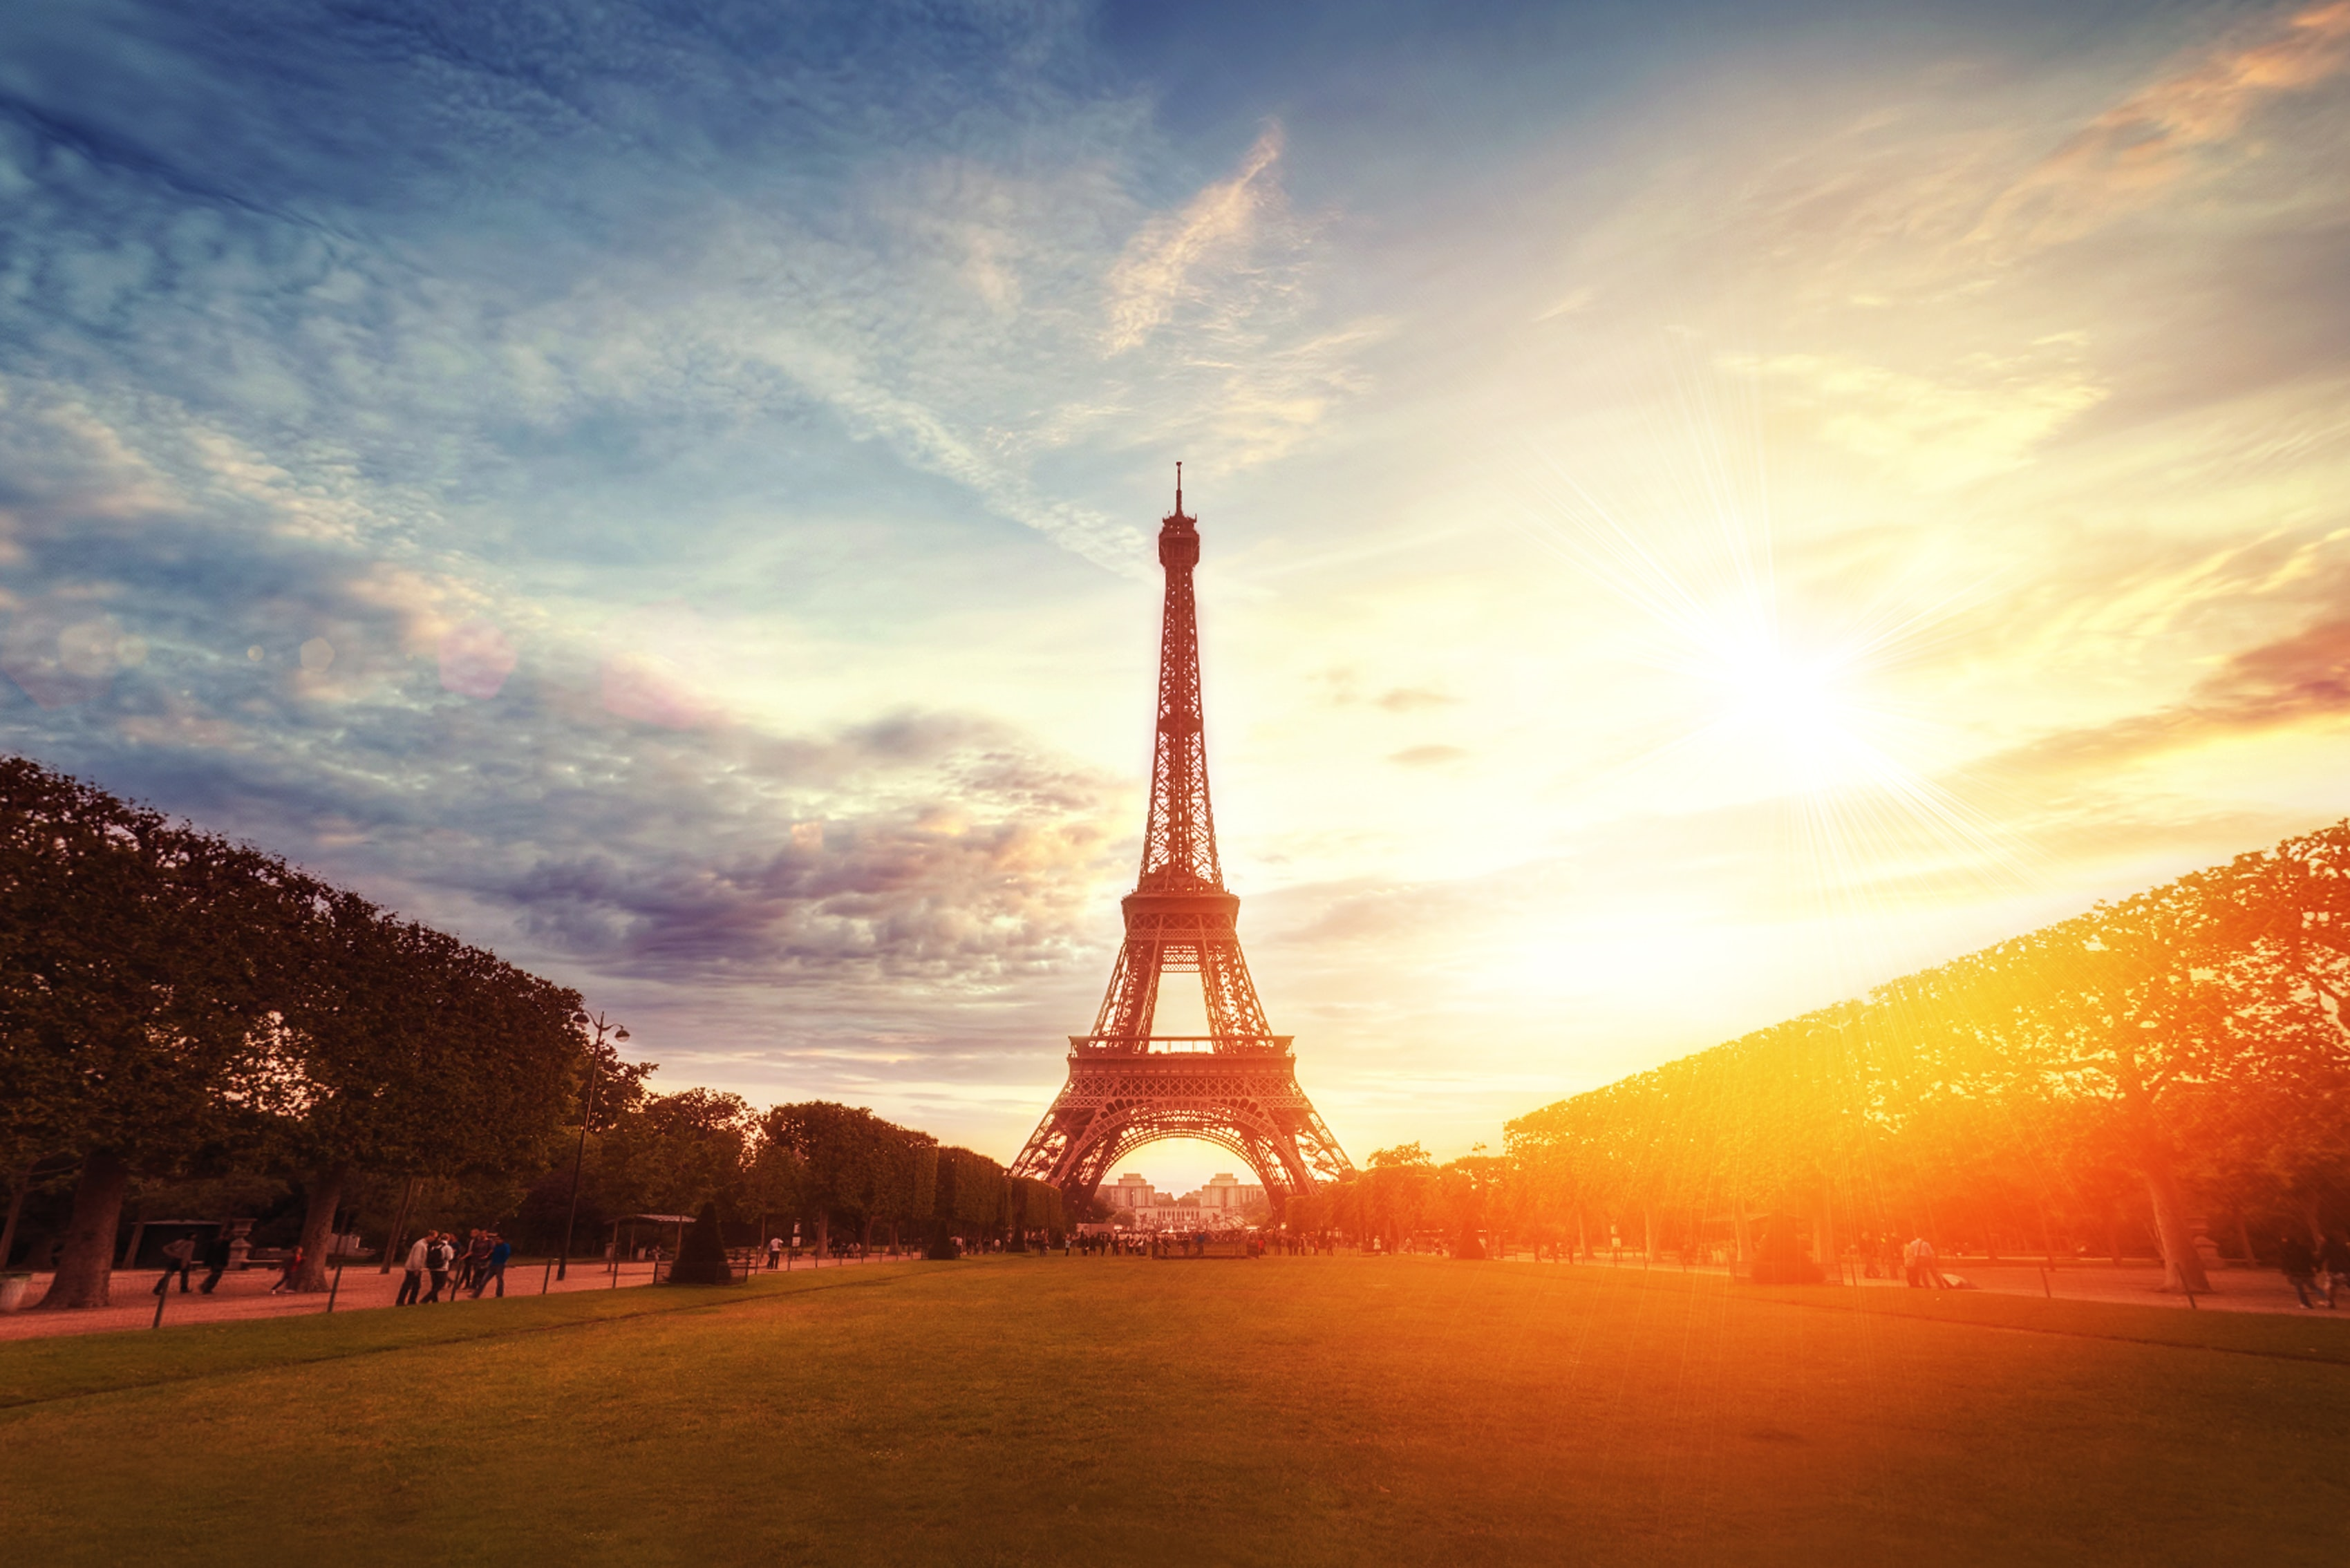 100 Eiffel Tower Images France Hd Download Free Images On